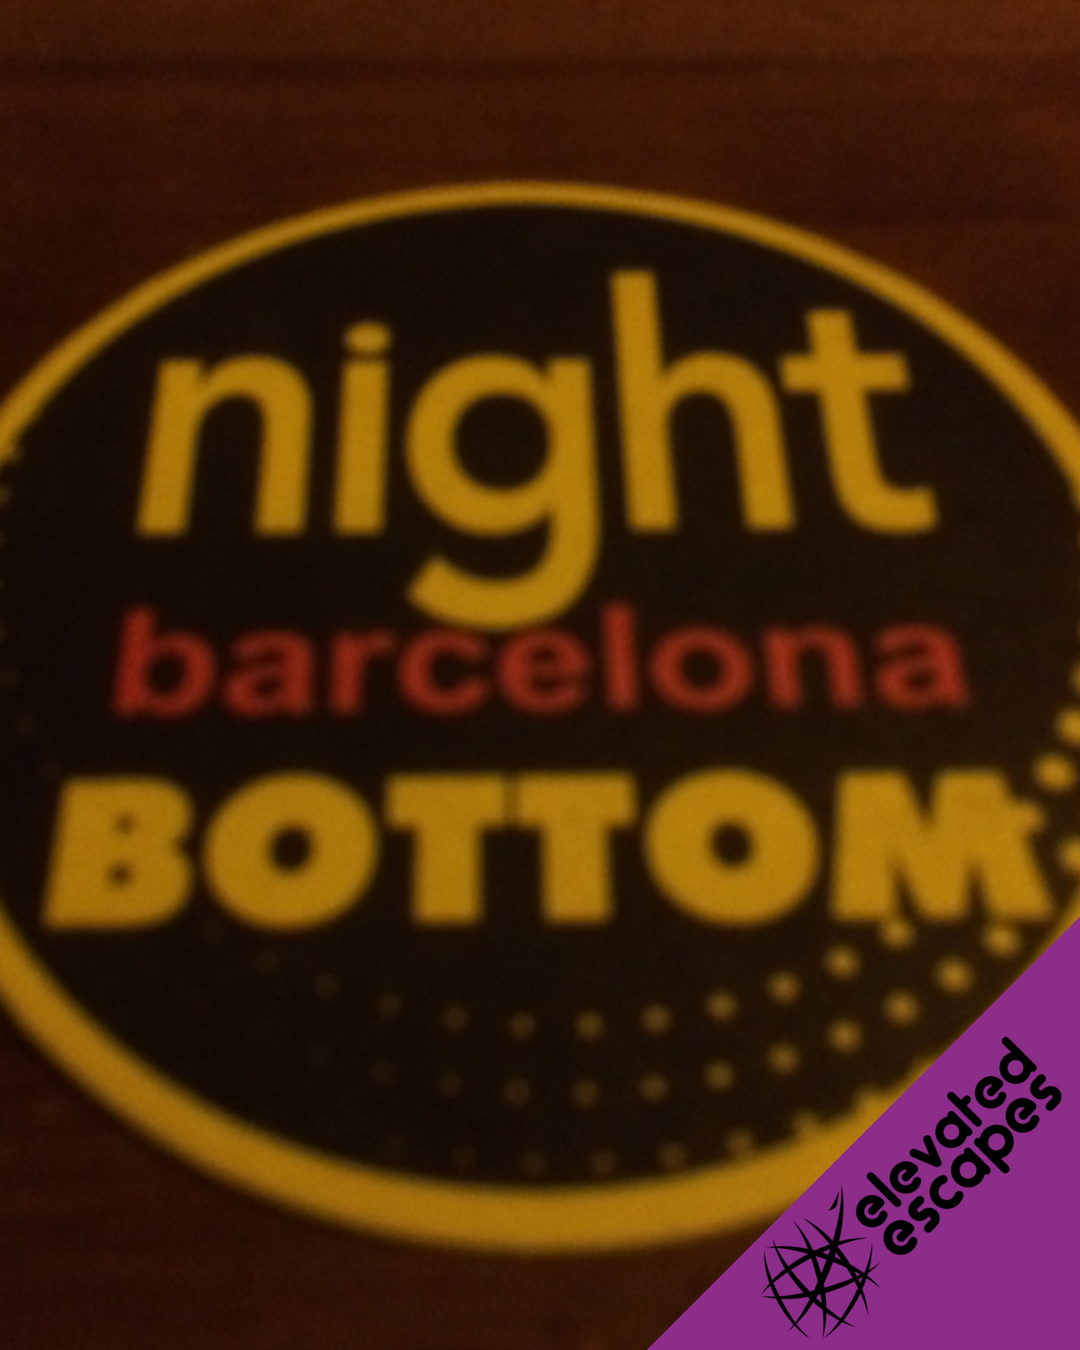 Night Barcelona Bottom